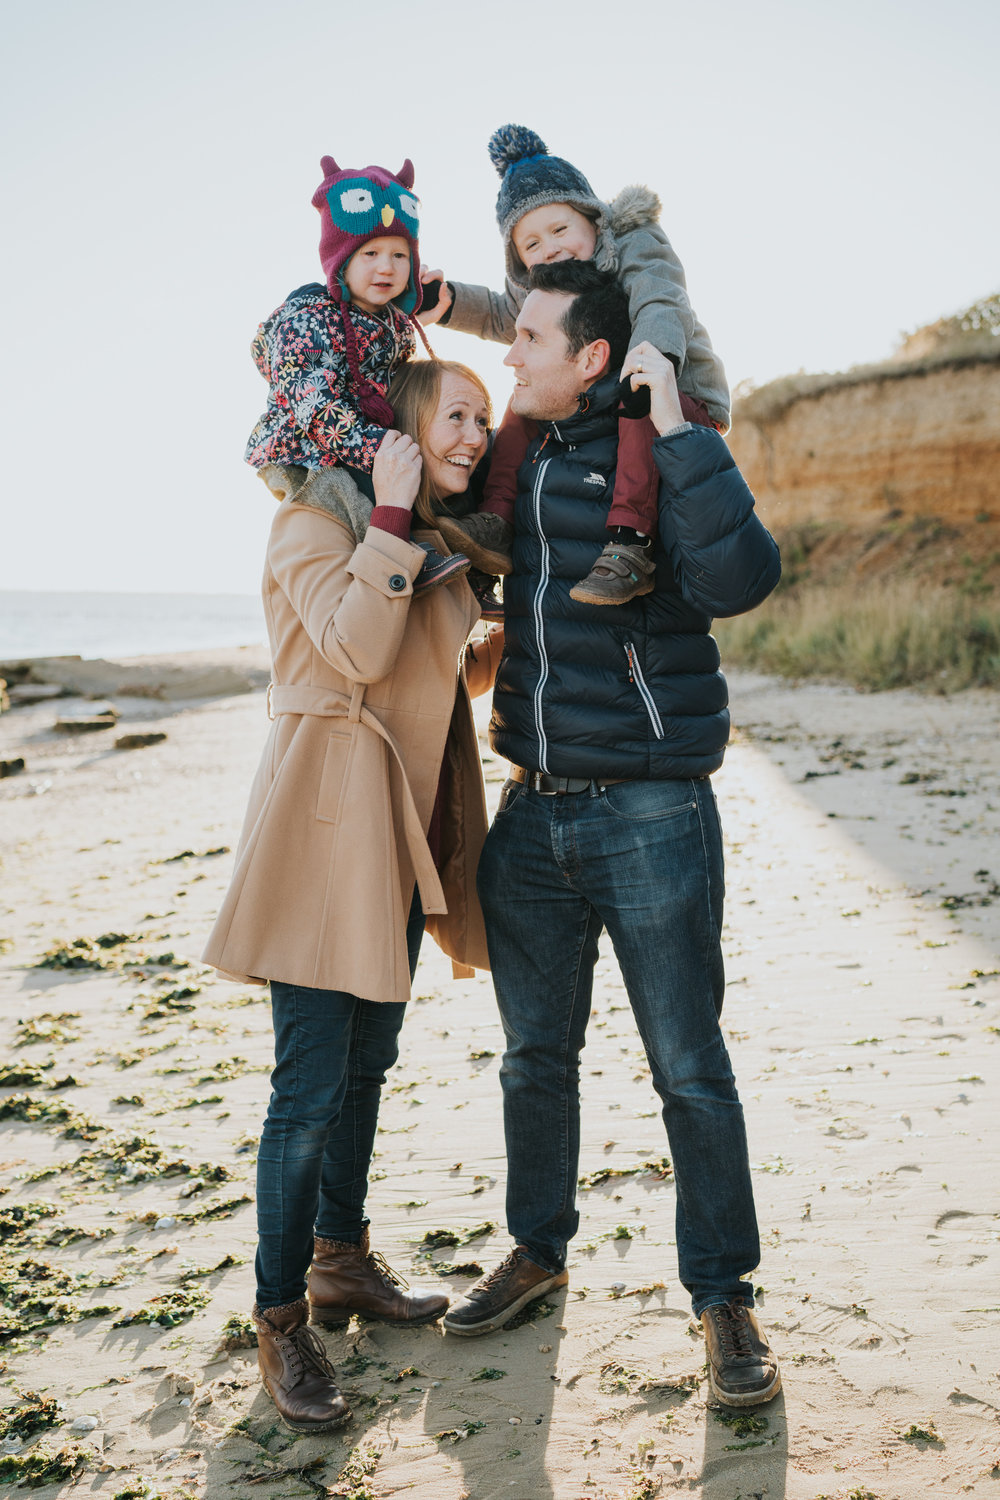 bushell-family-session-beach-cudmore-grove-lifestyle-grace-elizabeth-colchester-essex-alternative-relaxed-wedding-family-photography-devon-suffolk-norfolk-essex (13 of 34).jpg